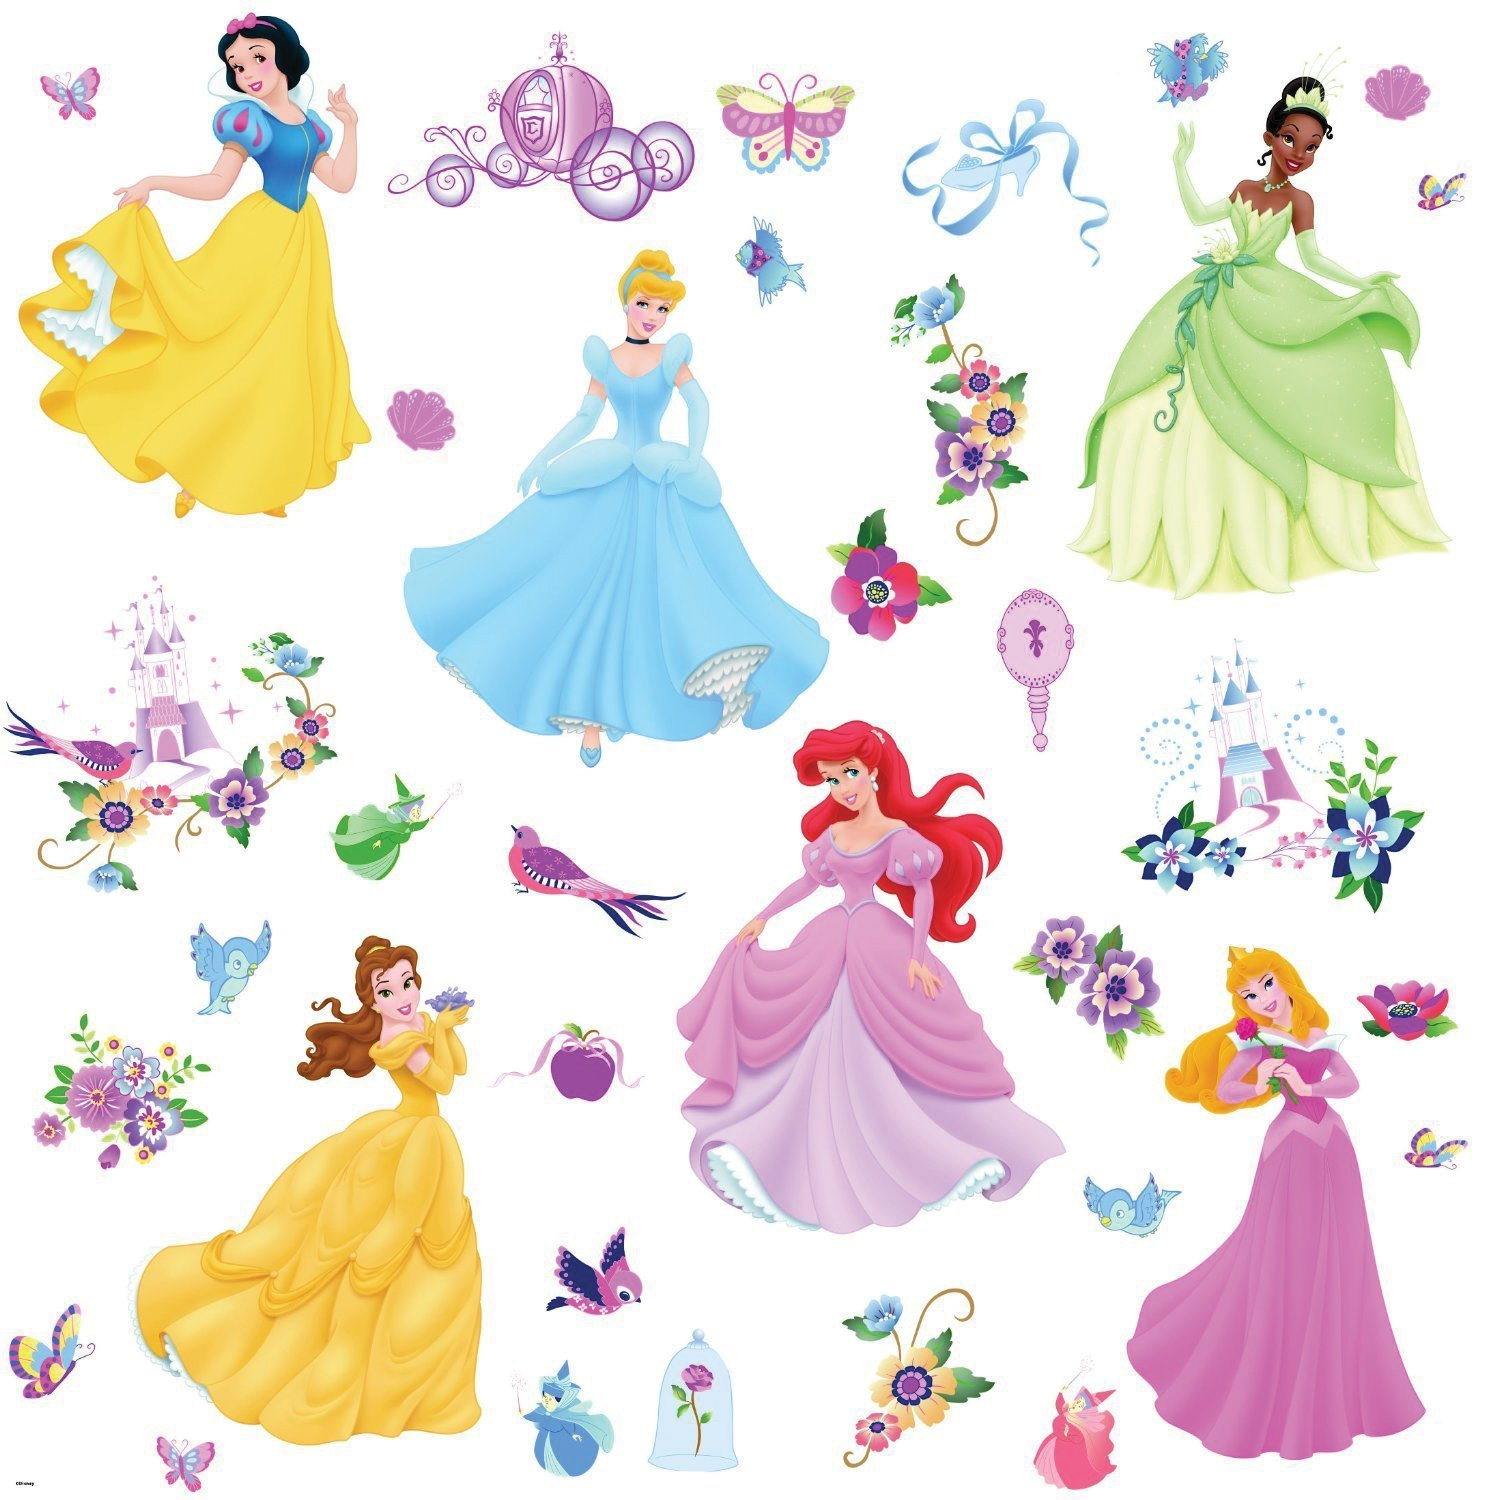 Wandsticker Disney Princess mit Glitzersteinen